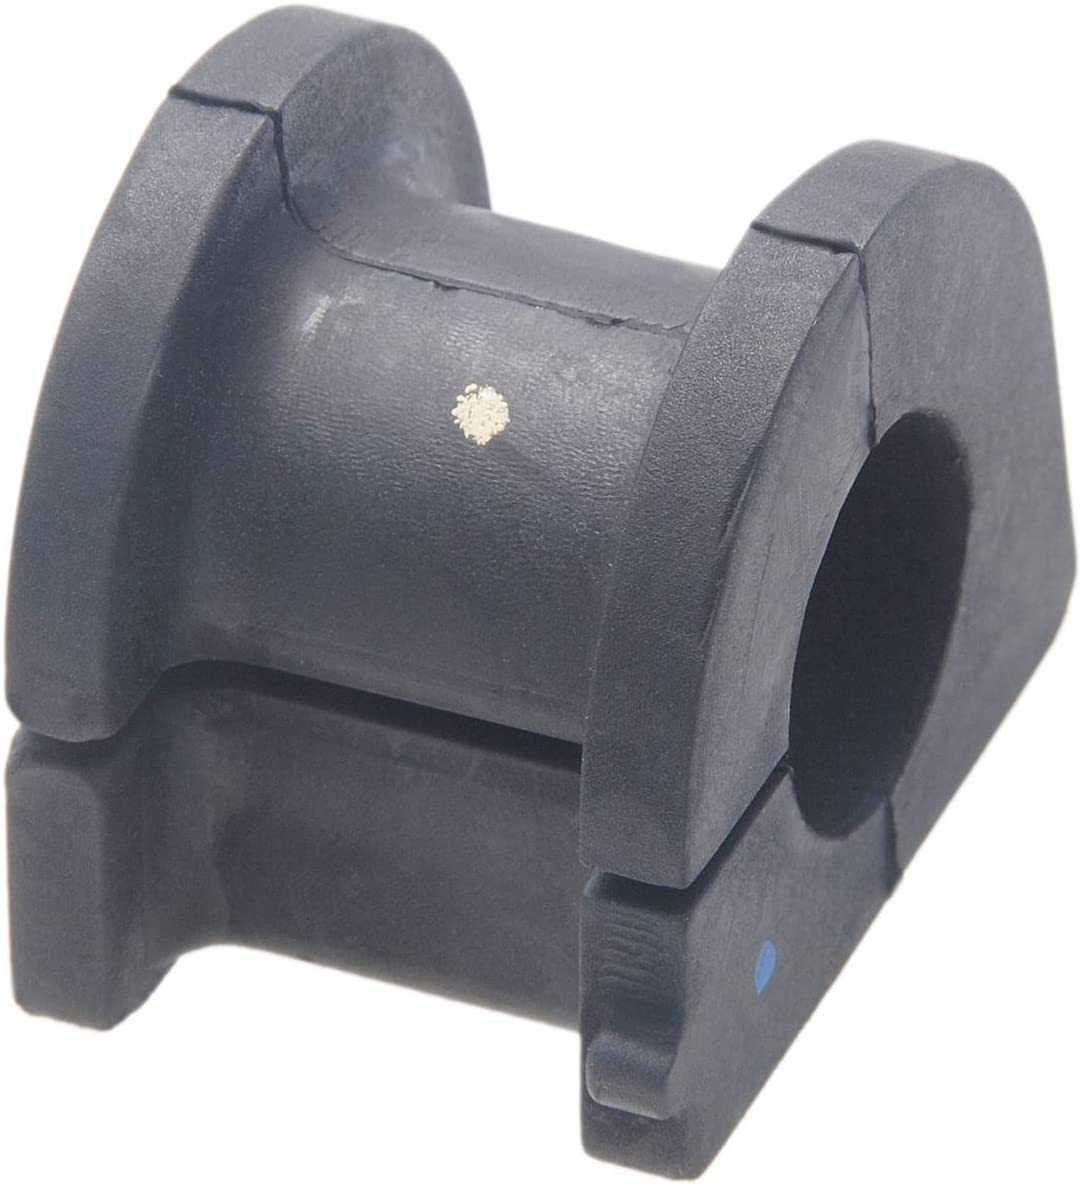 4156A041 - Rear Stabilizer Bushing D26 For Mitsubishi - Febest